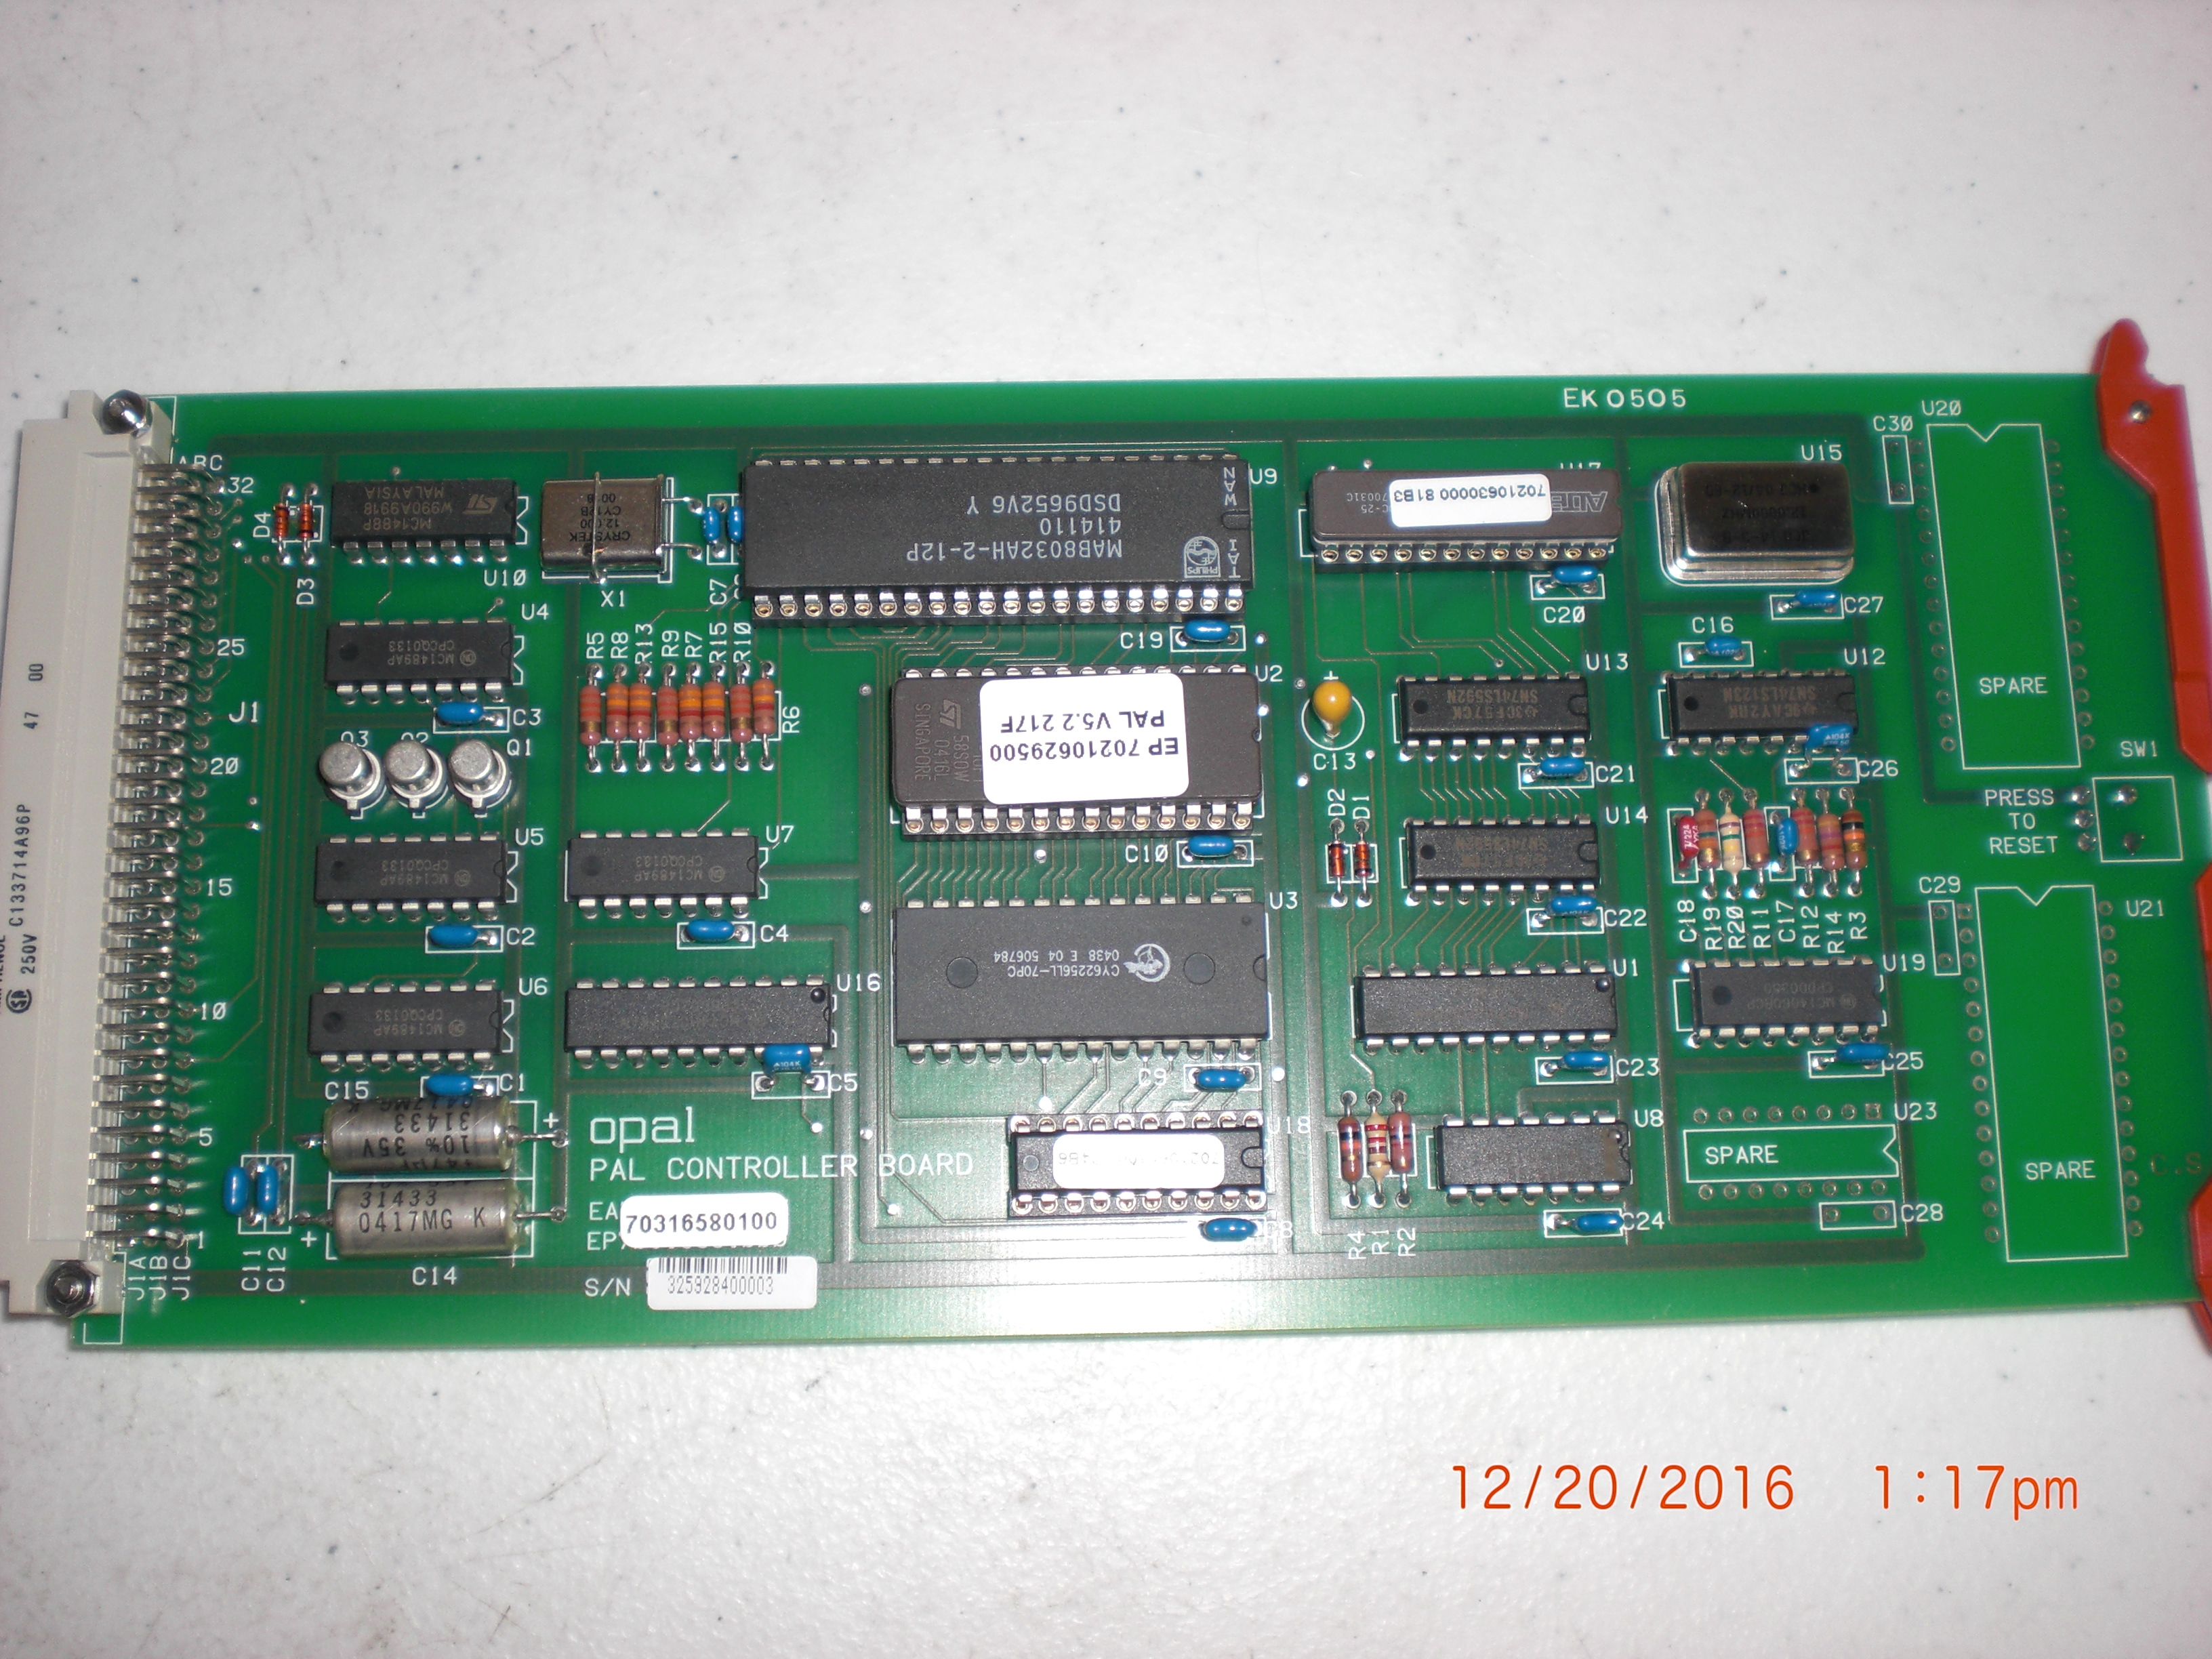 PCB  PAL Controller Opal EK0505 AMAT 70316580100 Core No Returns